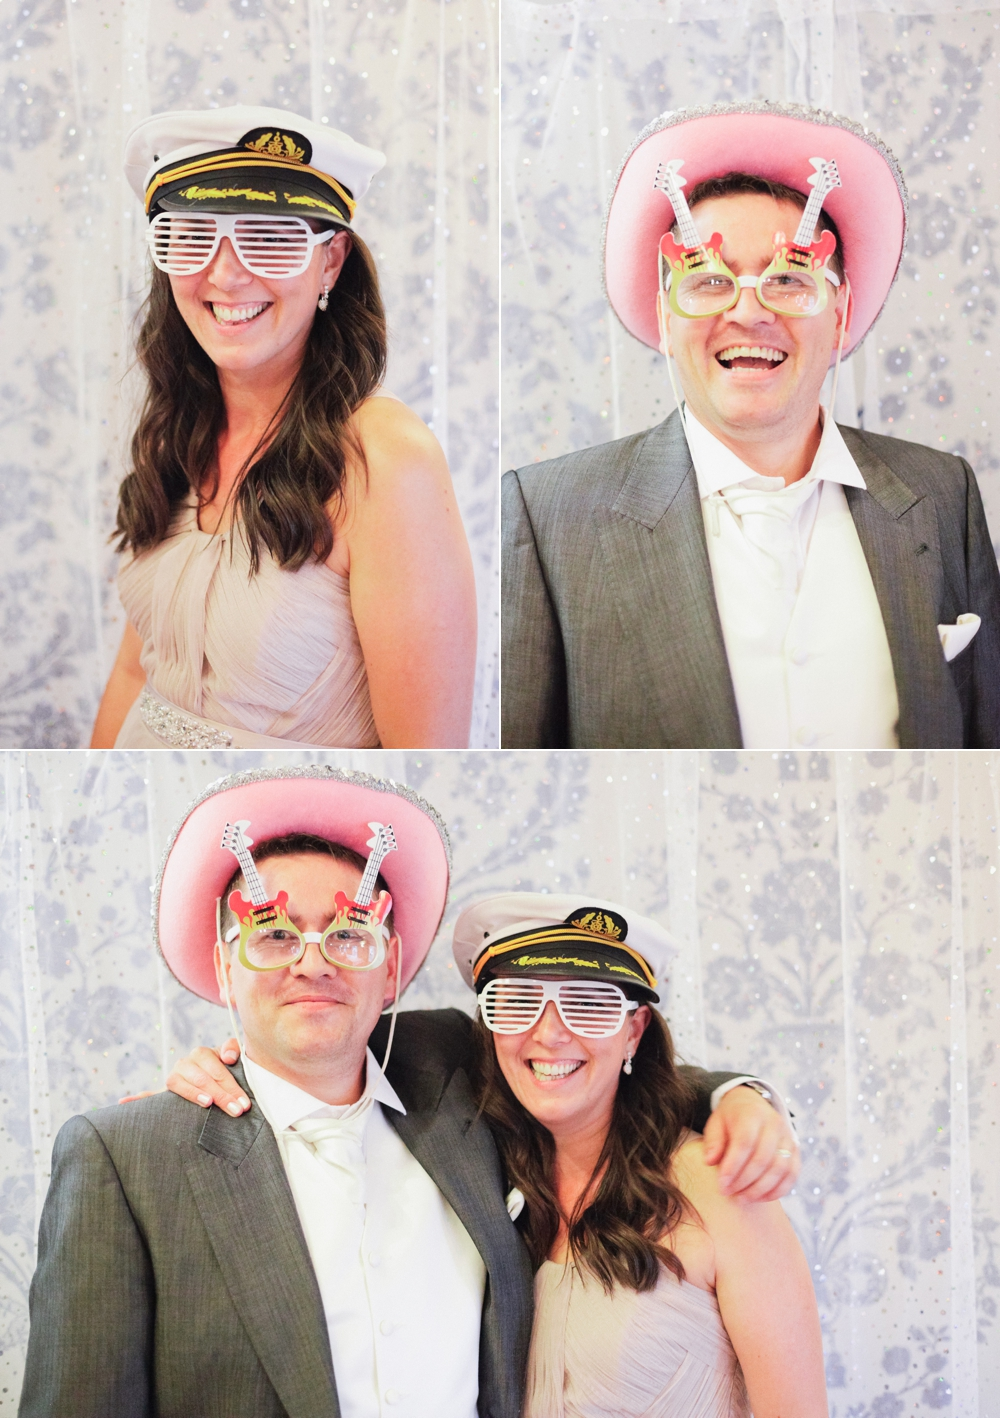 Wedding-Photo-Booth-Essex_0003.jpg